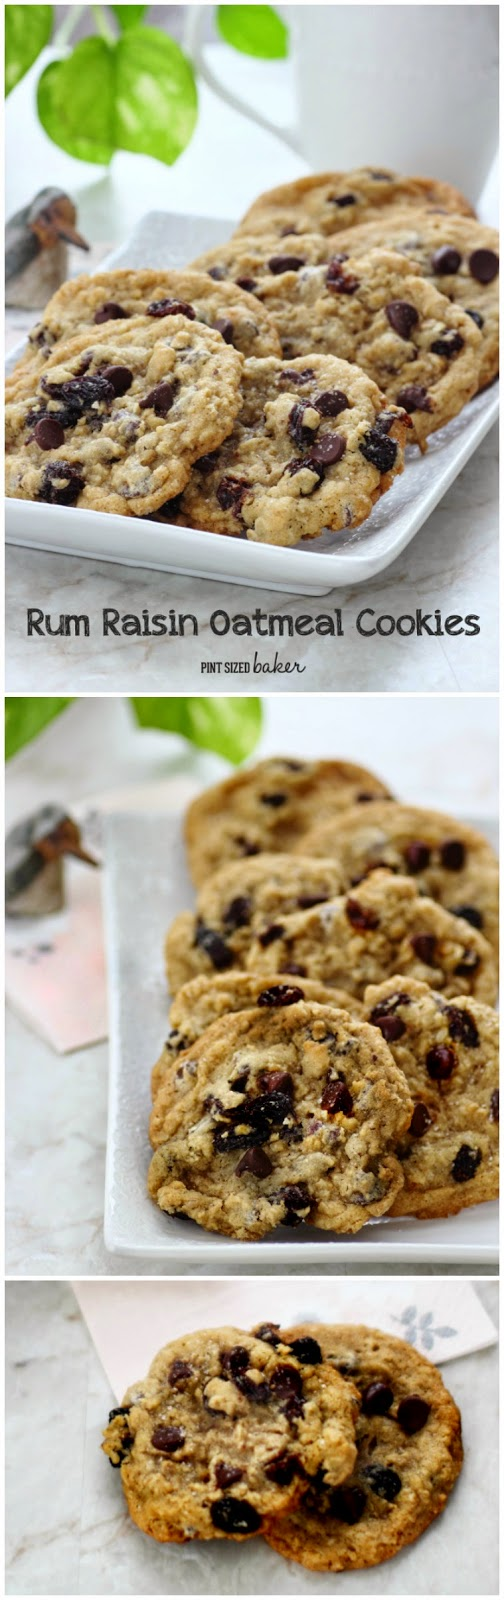 Rum Raisin Oatmeal Chocolate Chip Cookies are perfect for my girls night in!